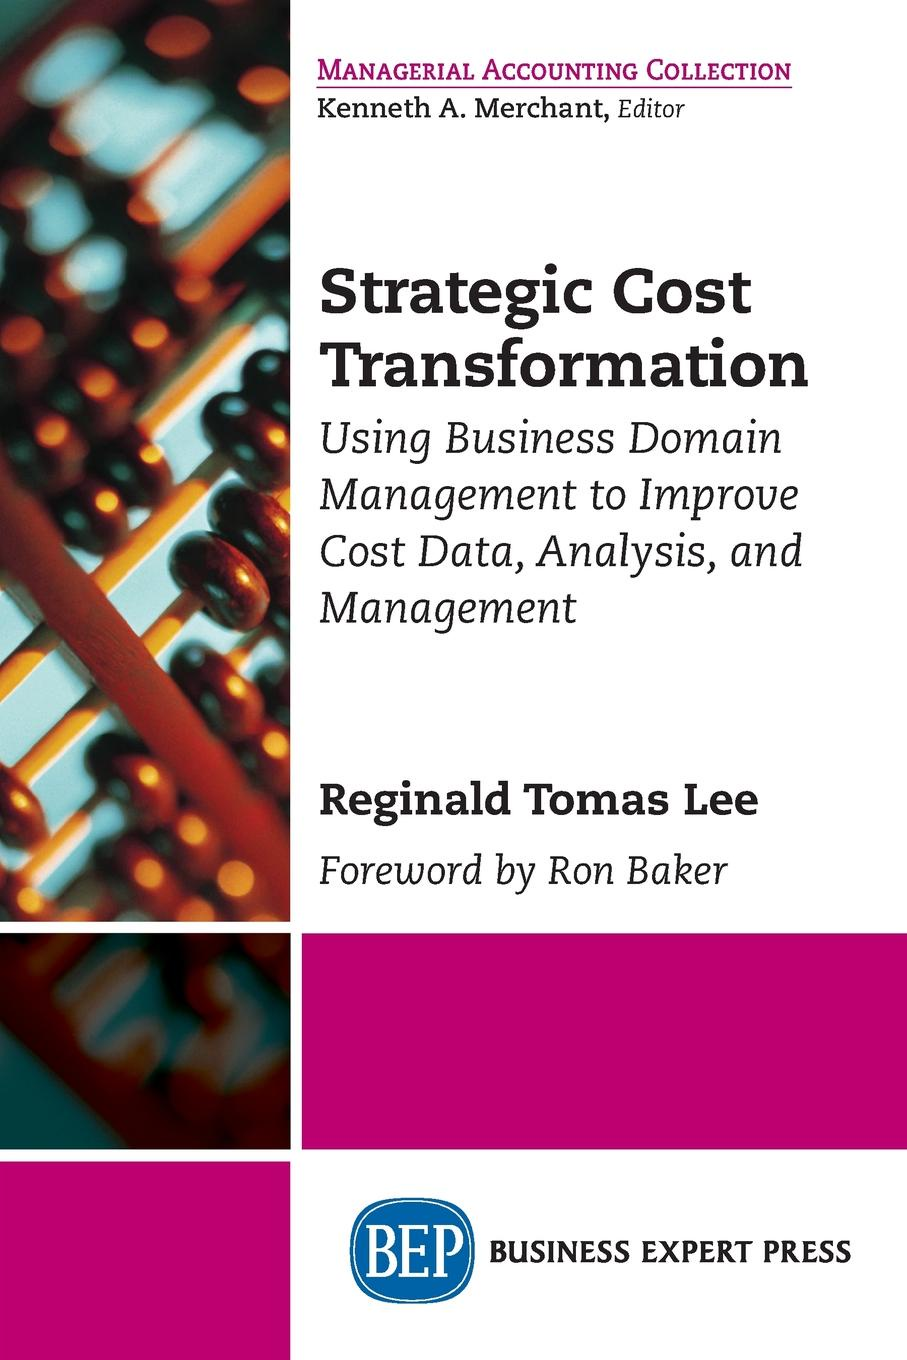 Strategic Cost Transformation. Using Business Domain Management to Improve Cost Data, Analysis, and Management